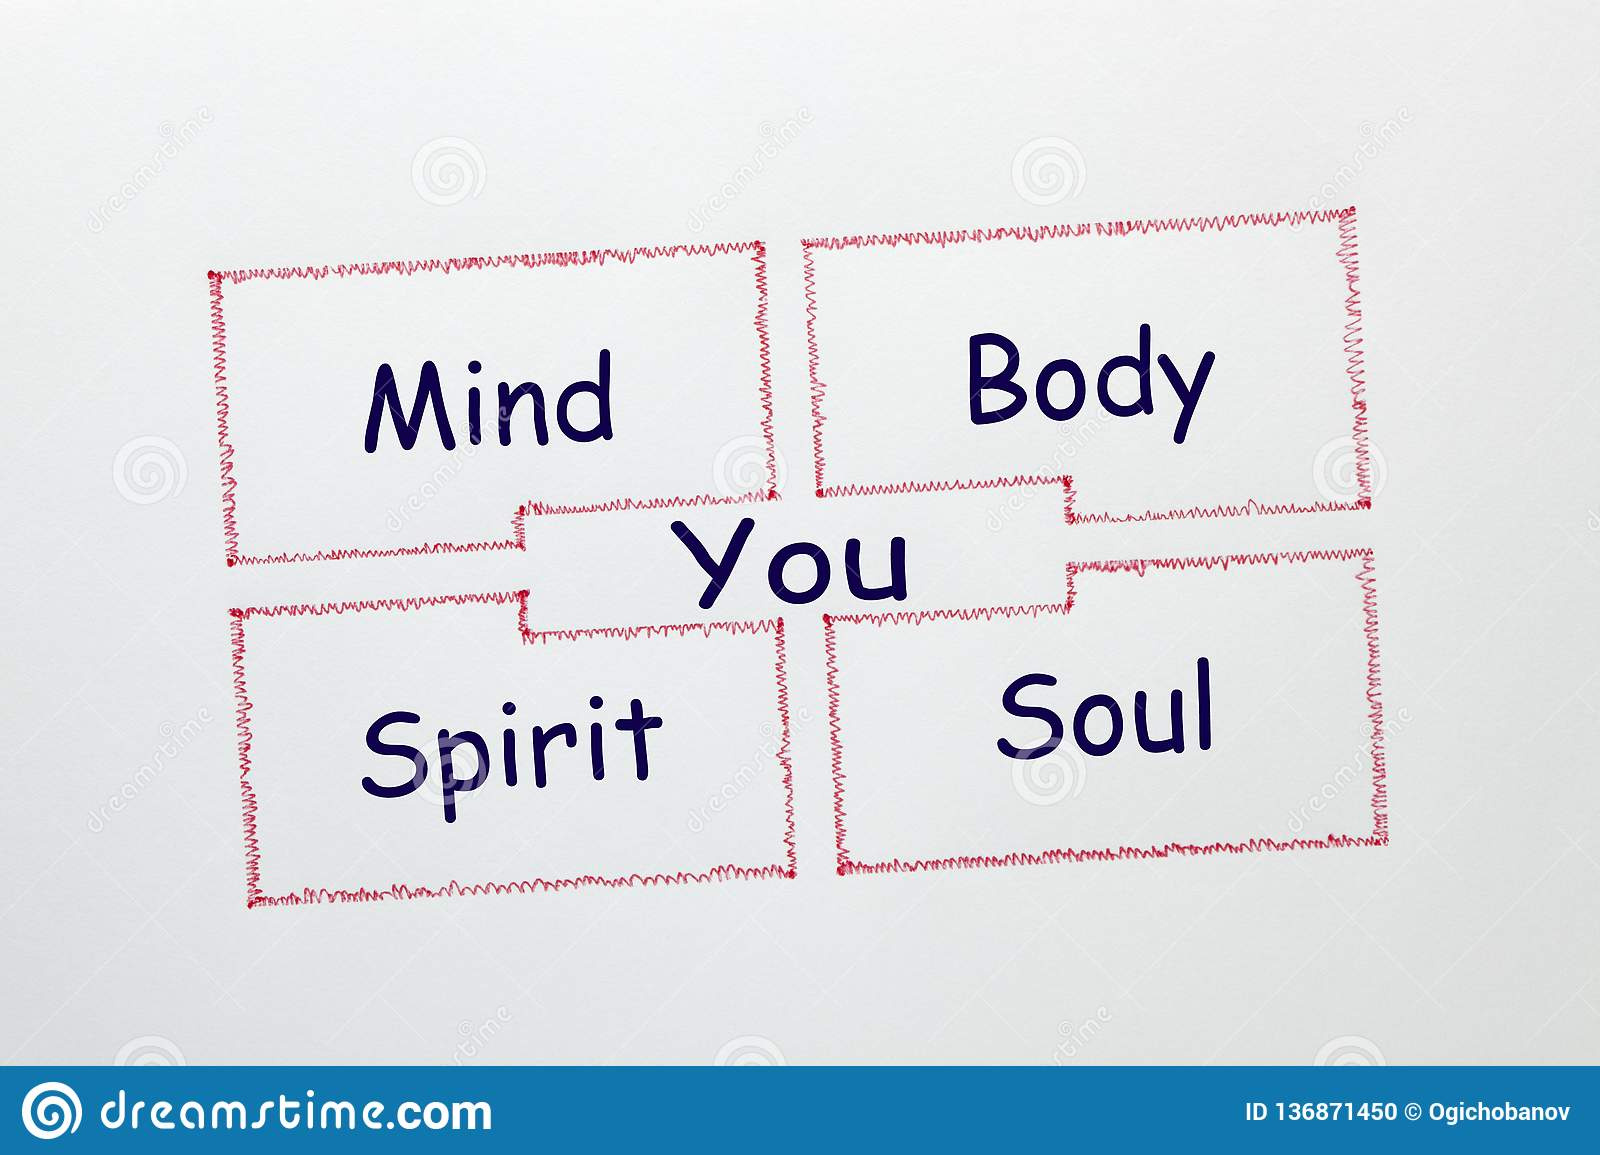 hight resolution of mind body spirit soul and you drawing diagram on white background growth concept